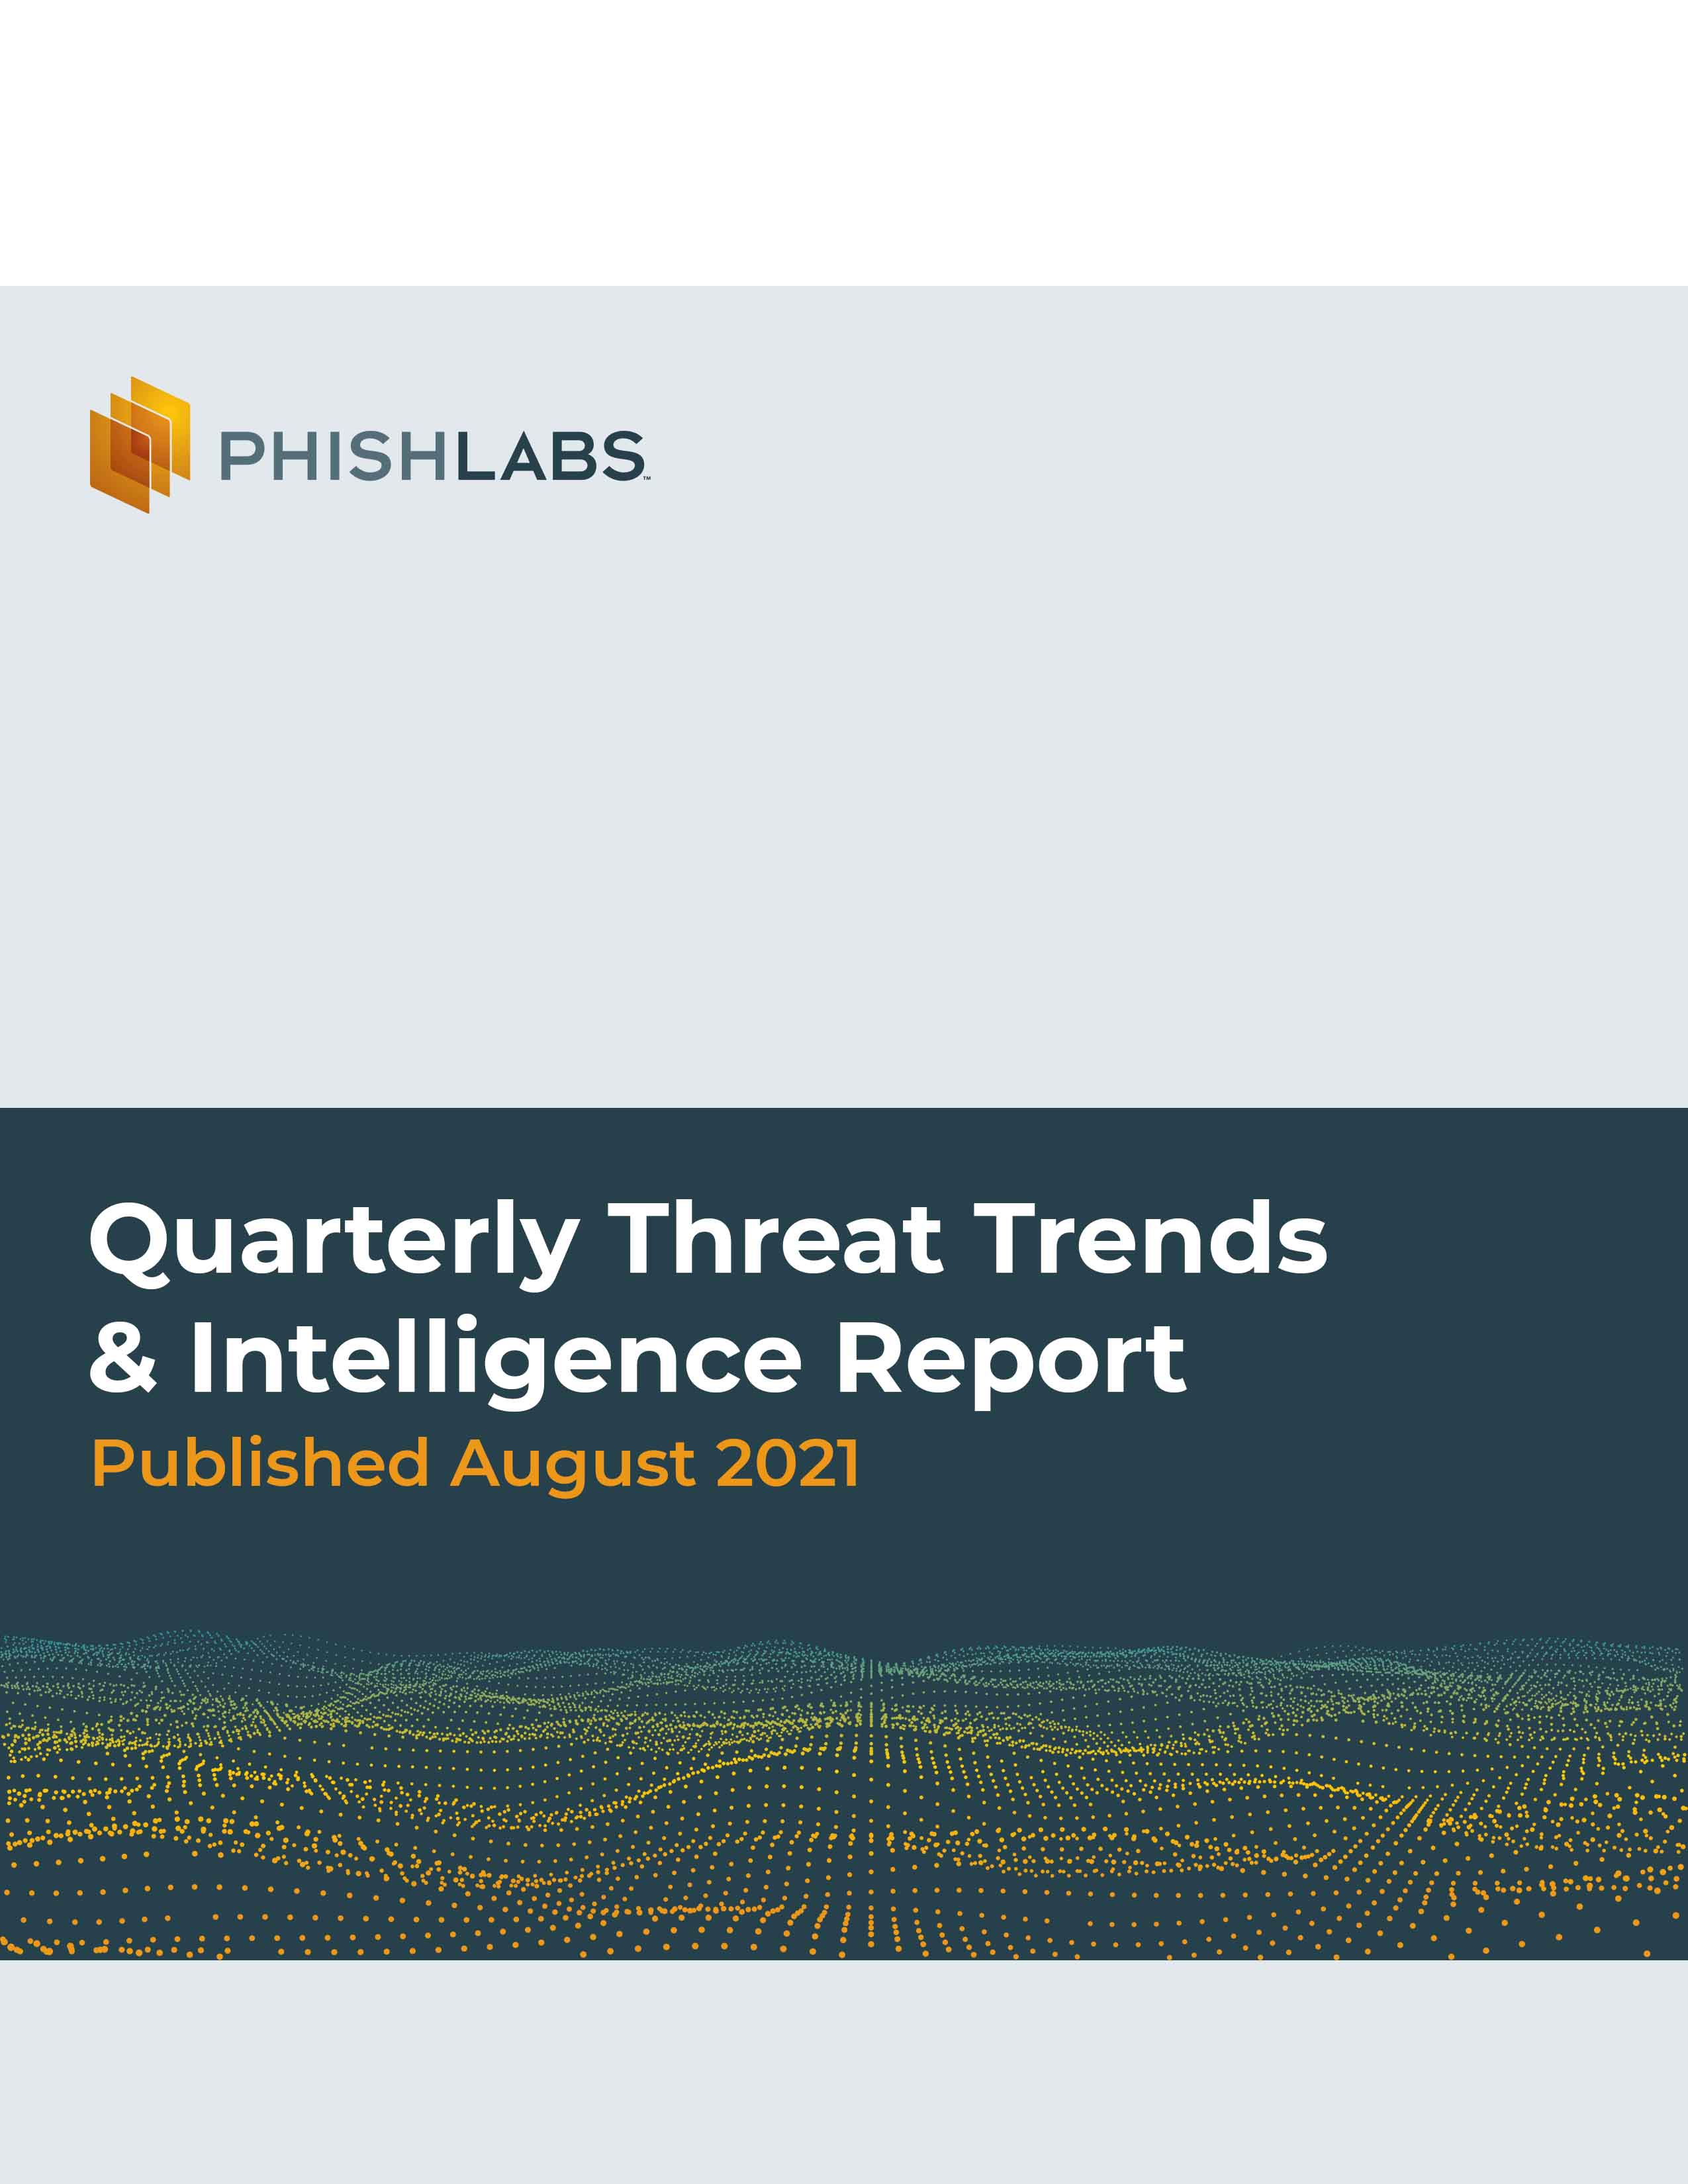 Quarterly Threat Trends & Intelligence Report - August 2021